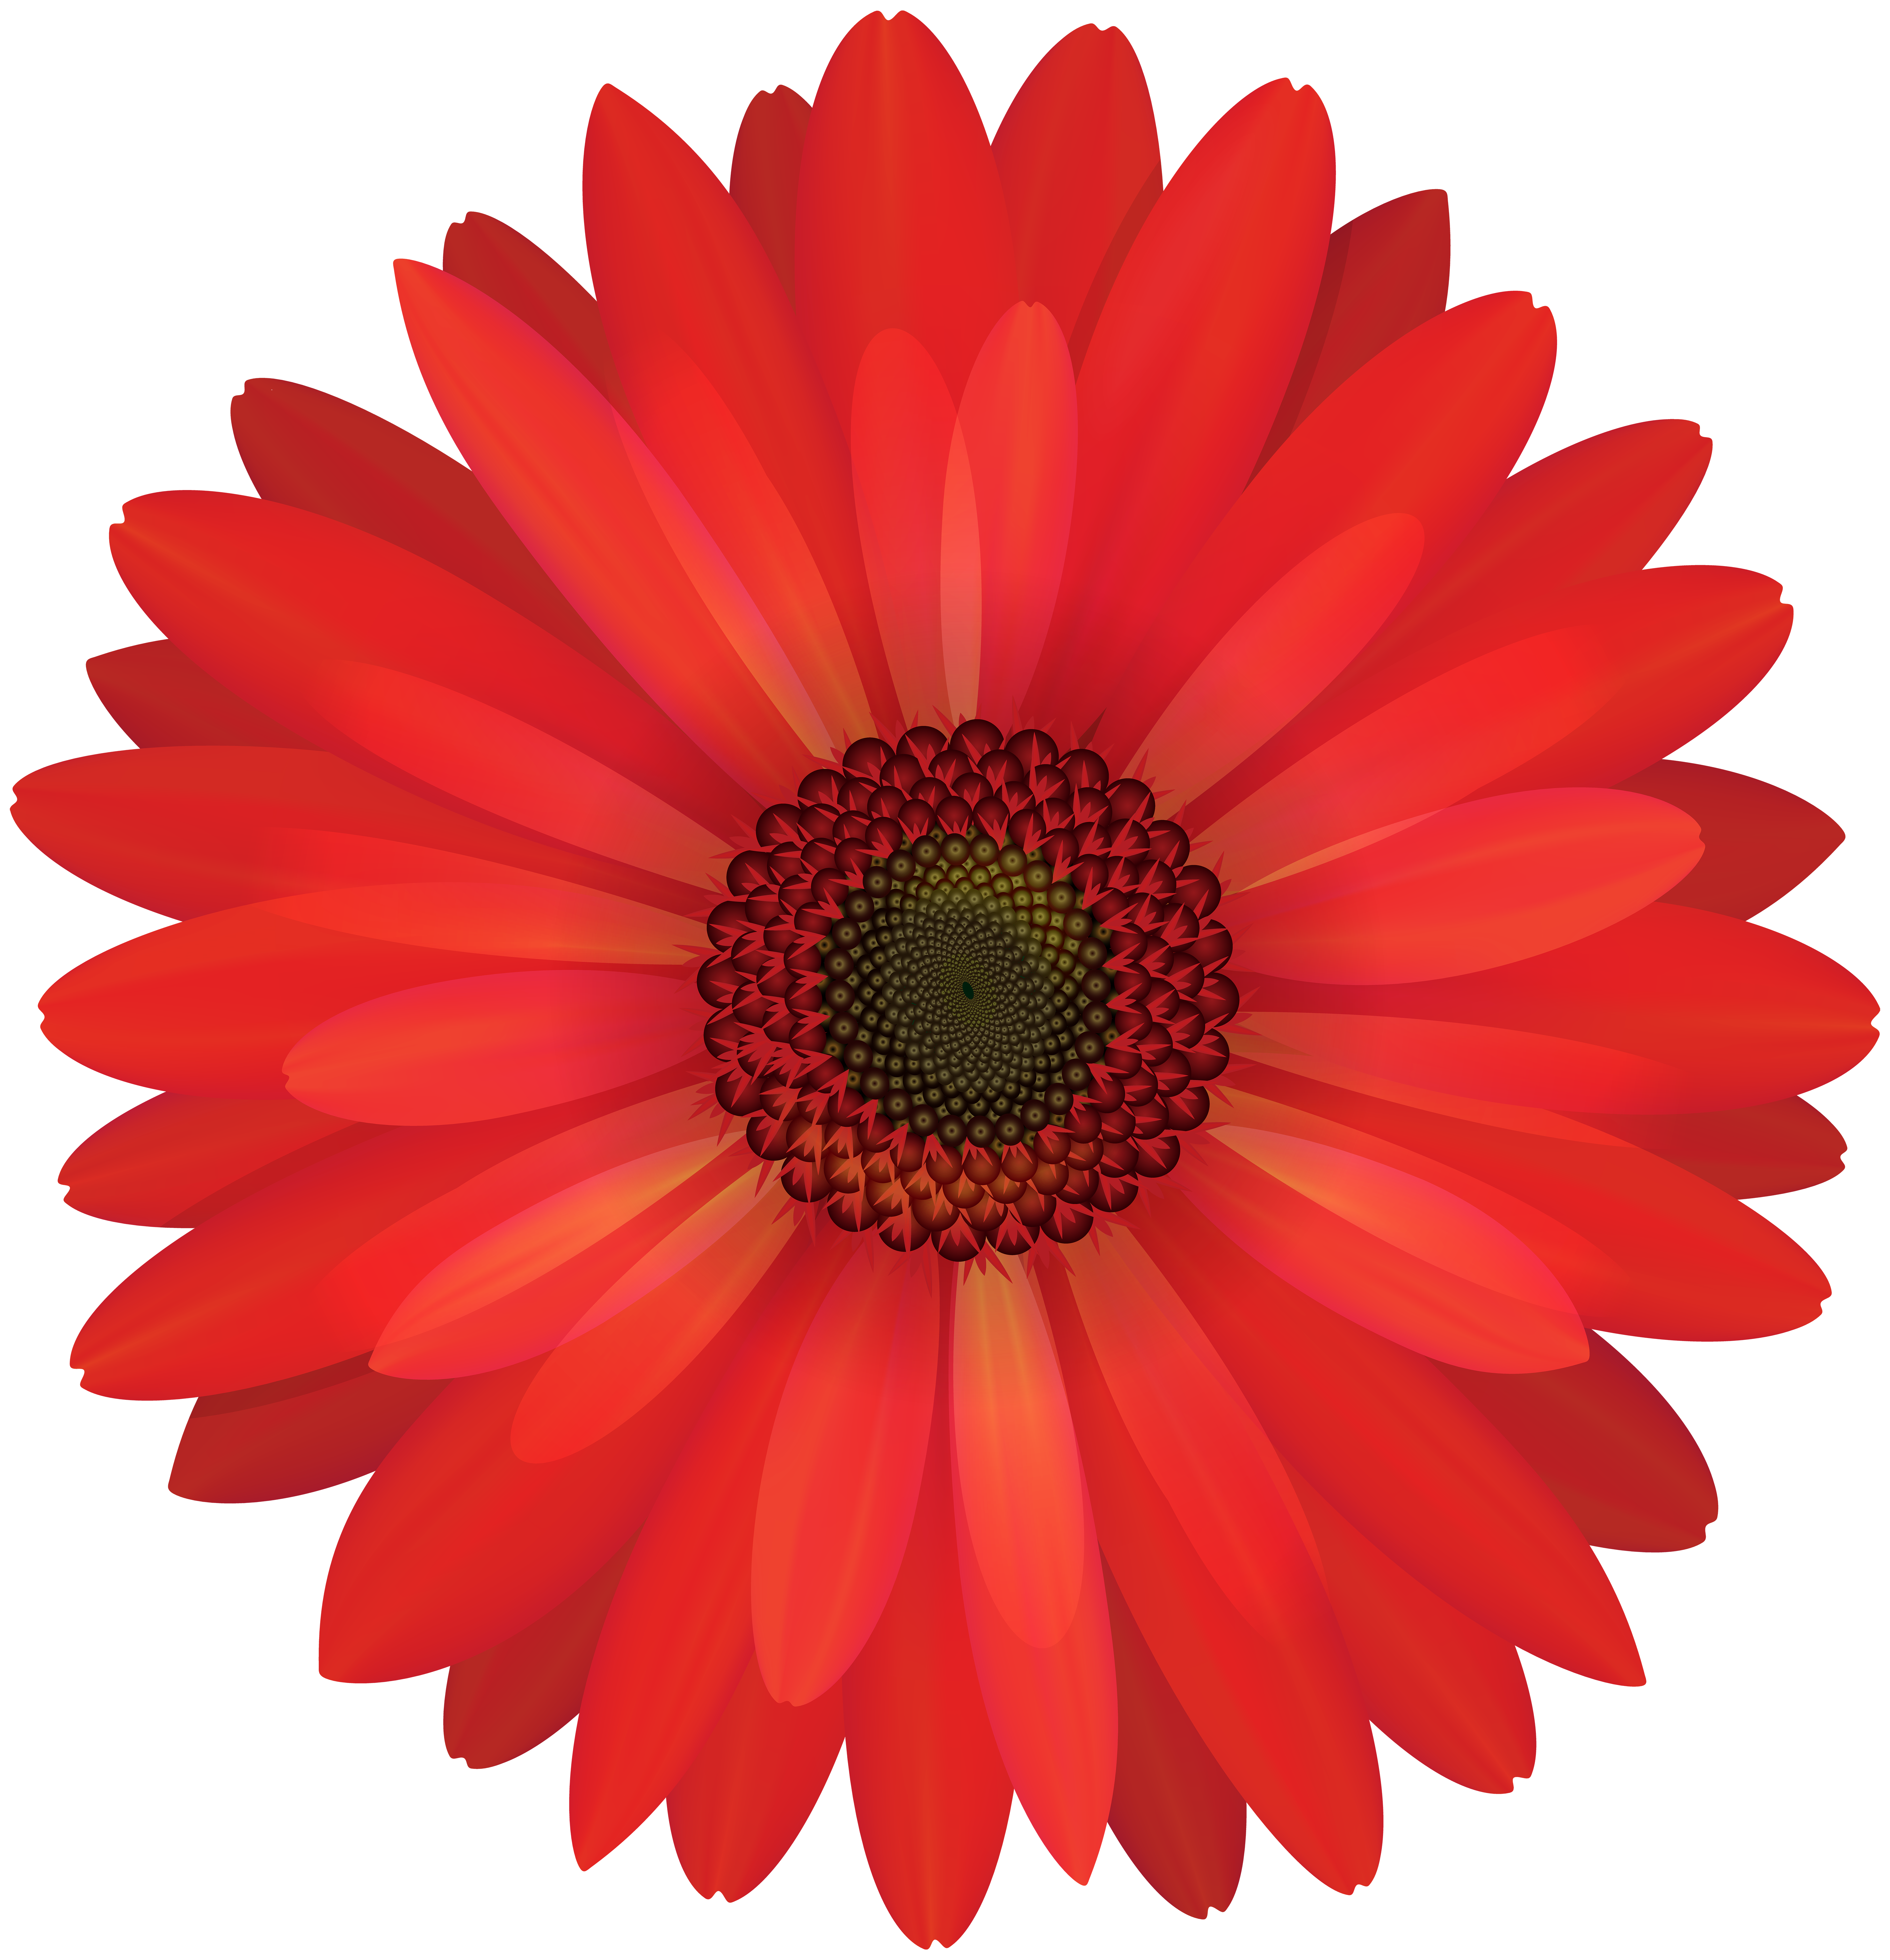 Flower image download banner royalty free stock Free photo: Red flower - Plant, Petal, Spring - Free Download - Jooinn banner royalty free stock